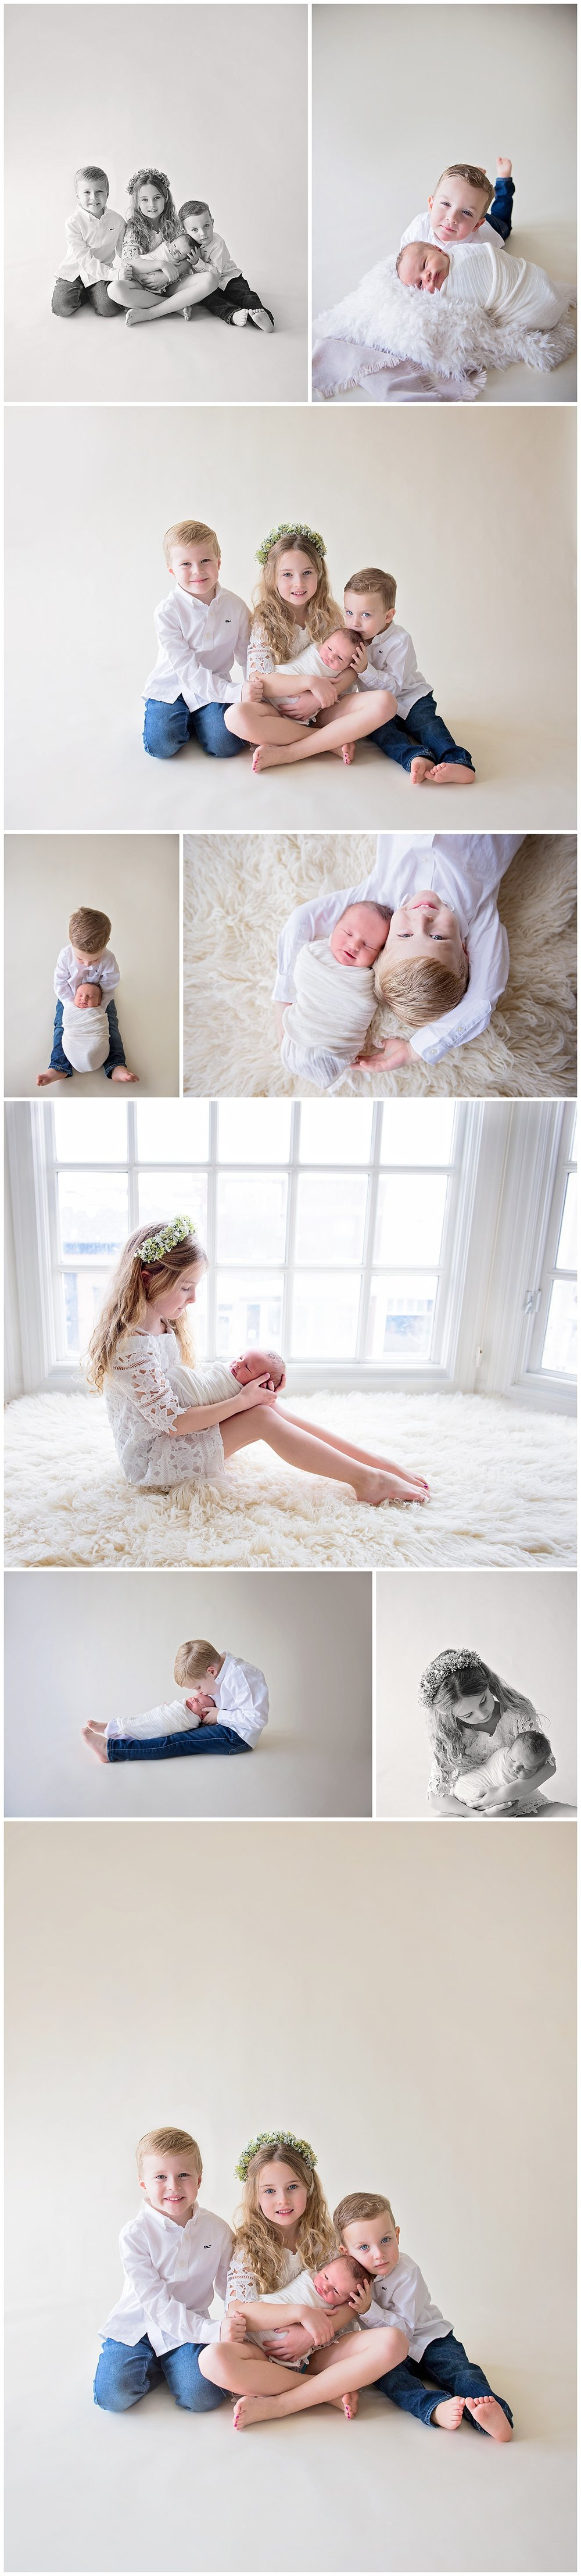 Hinsdale_Newborn_Photographer.jpg